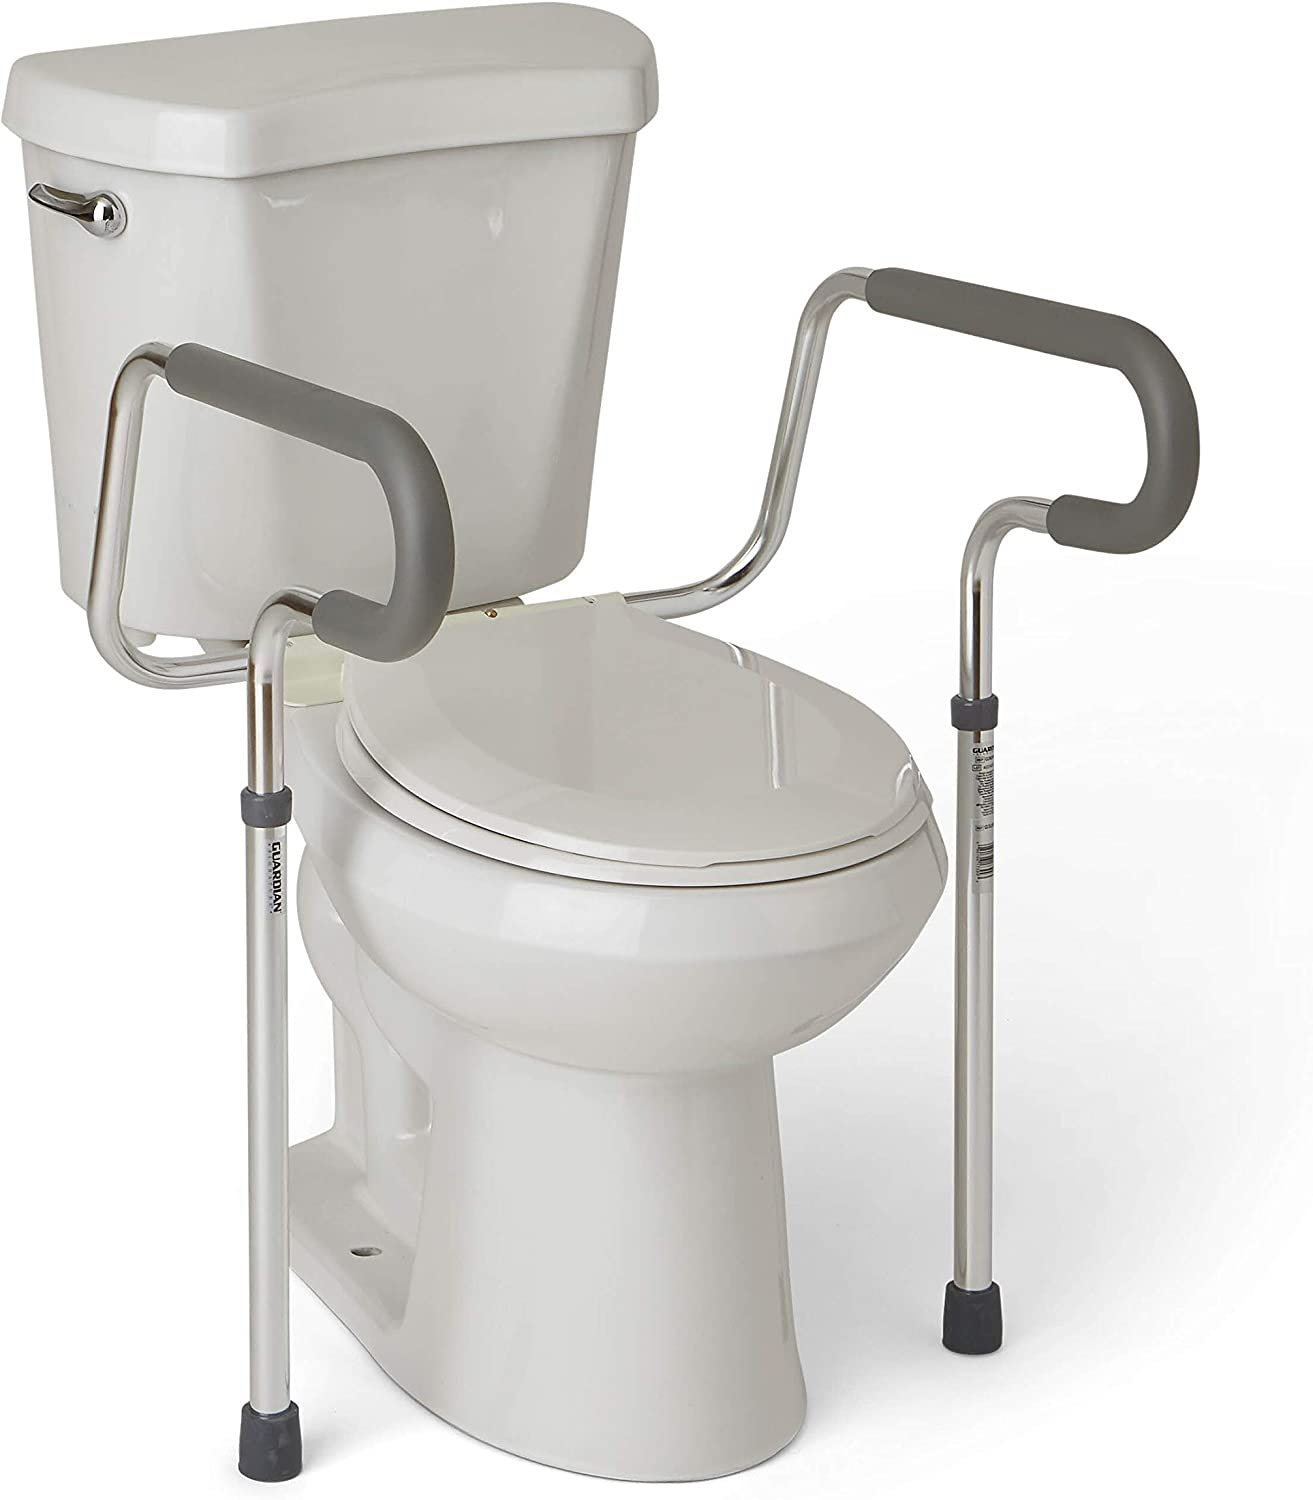 best toilet safety rails: Medline's Guardian Toilet Safety Rail